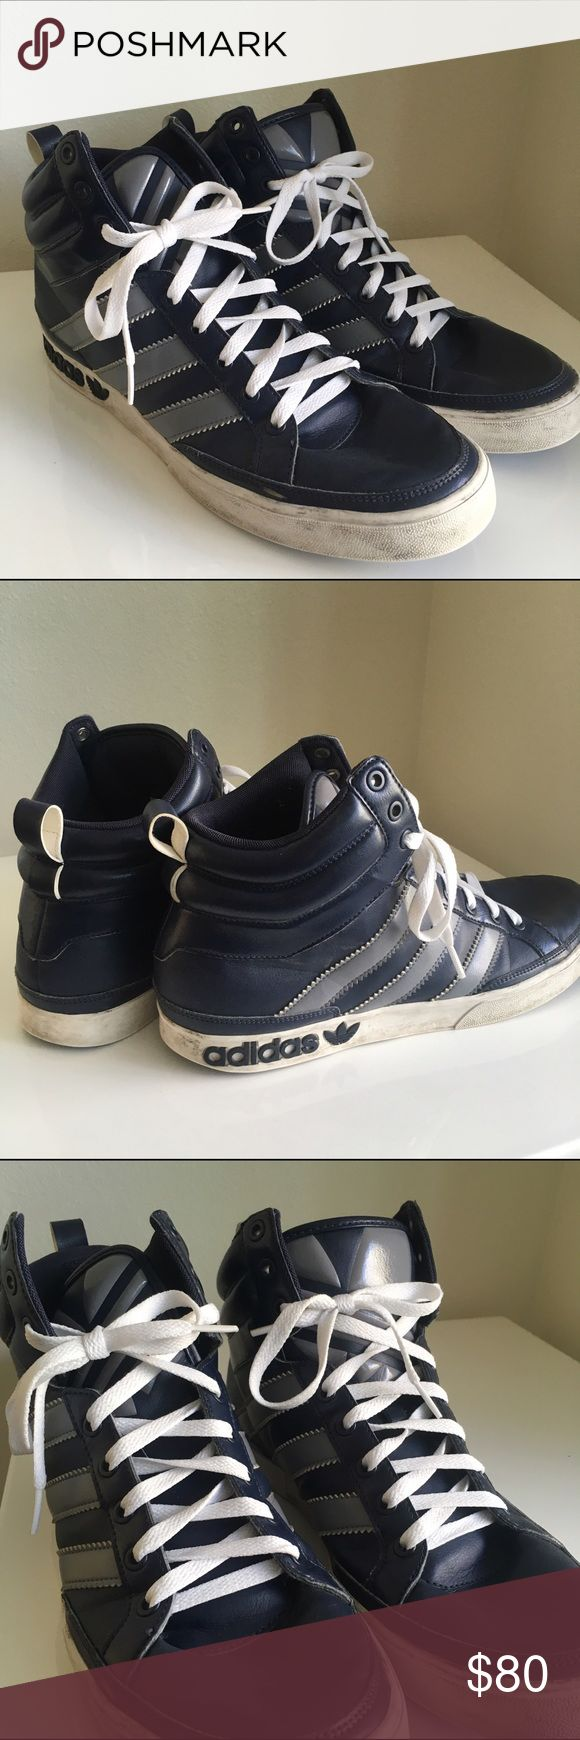 BOGO Men's Adidas high tops Navy • fresh laces • buy these and pick out another pair of men's shoes in my closet for free. Let me know and will update the listing for purchase! Adidas Shoes Sneakers